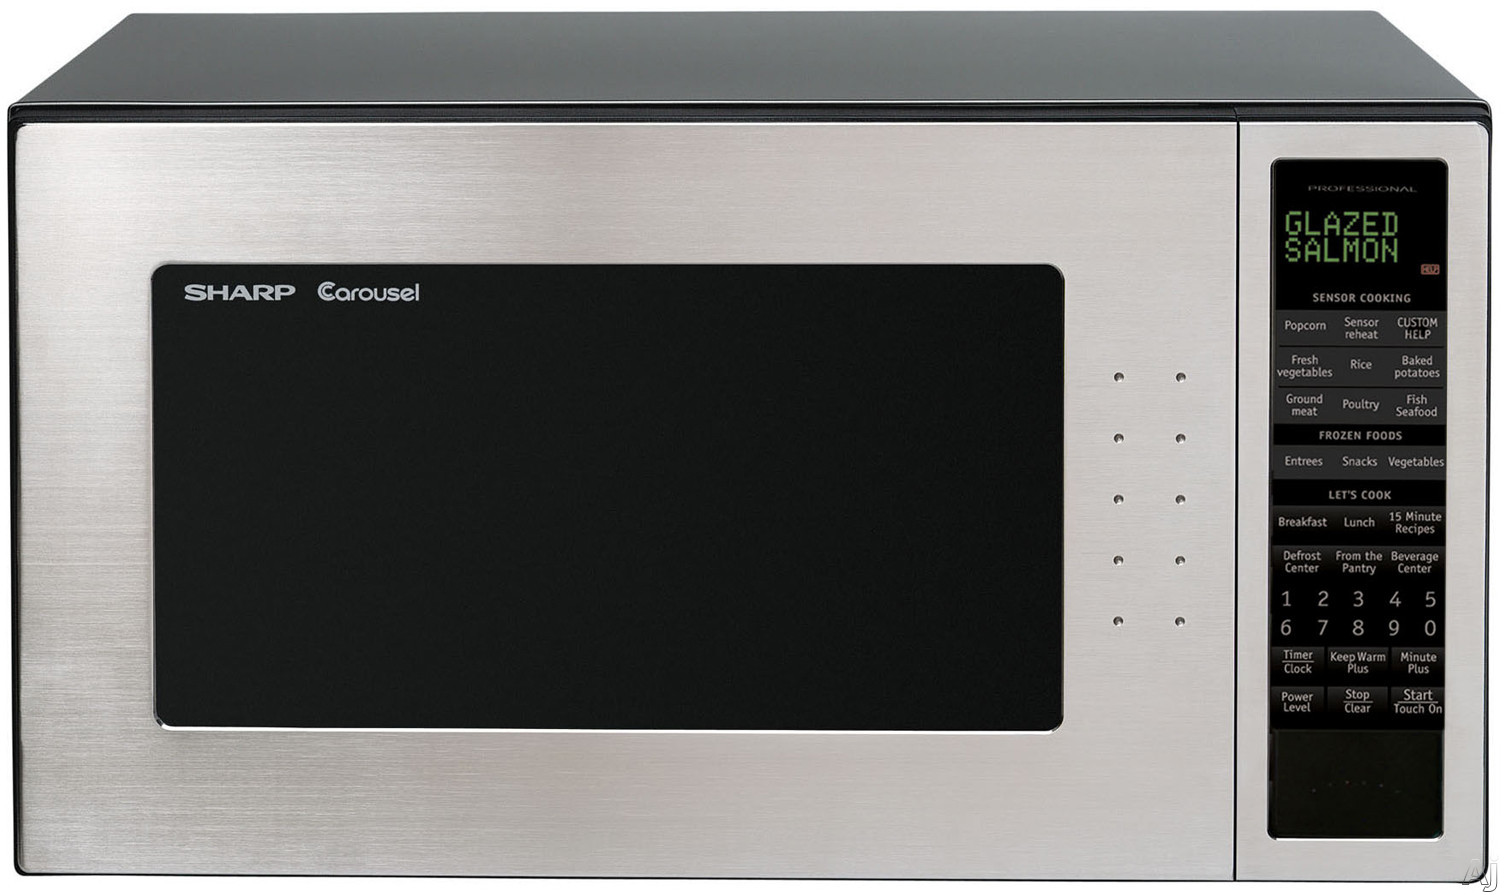 Sharp R530 2 0 Cu Ft Countertop Microwave Oven With